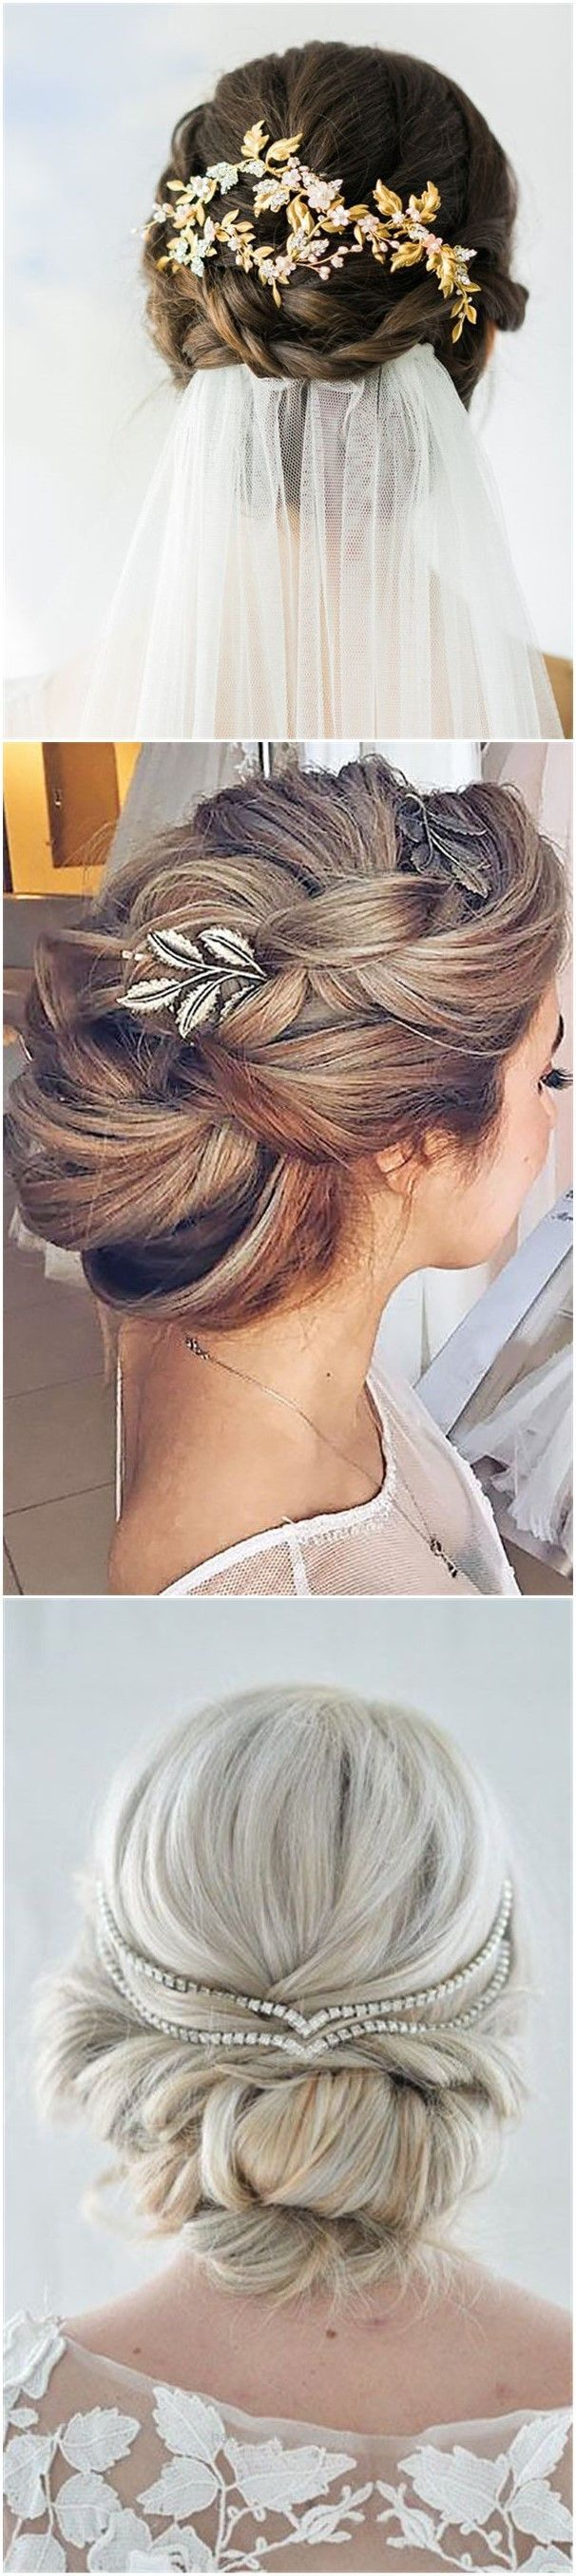 Outstanding Wedding Hairstyles » Hair Comes the Bride – 20 Bridal Hair Accessories Get Style Advice for Any Budget See more: www.weddinginclud… The post Wedding Hairstyles » Hair Comes the Bri ..